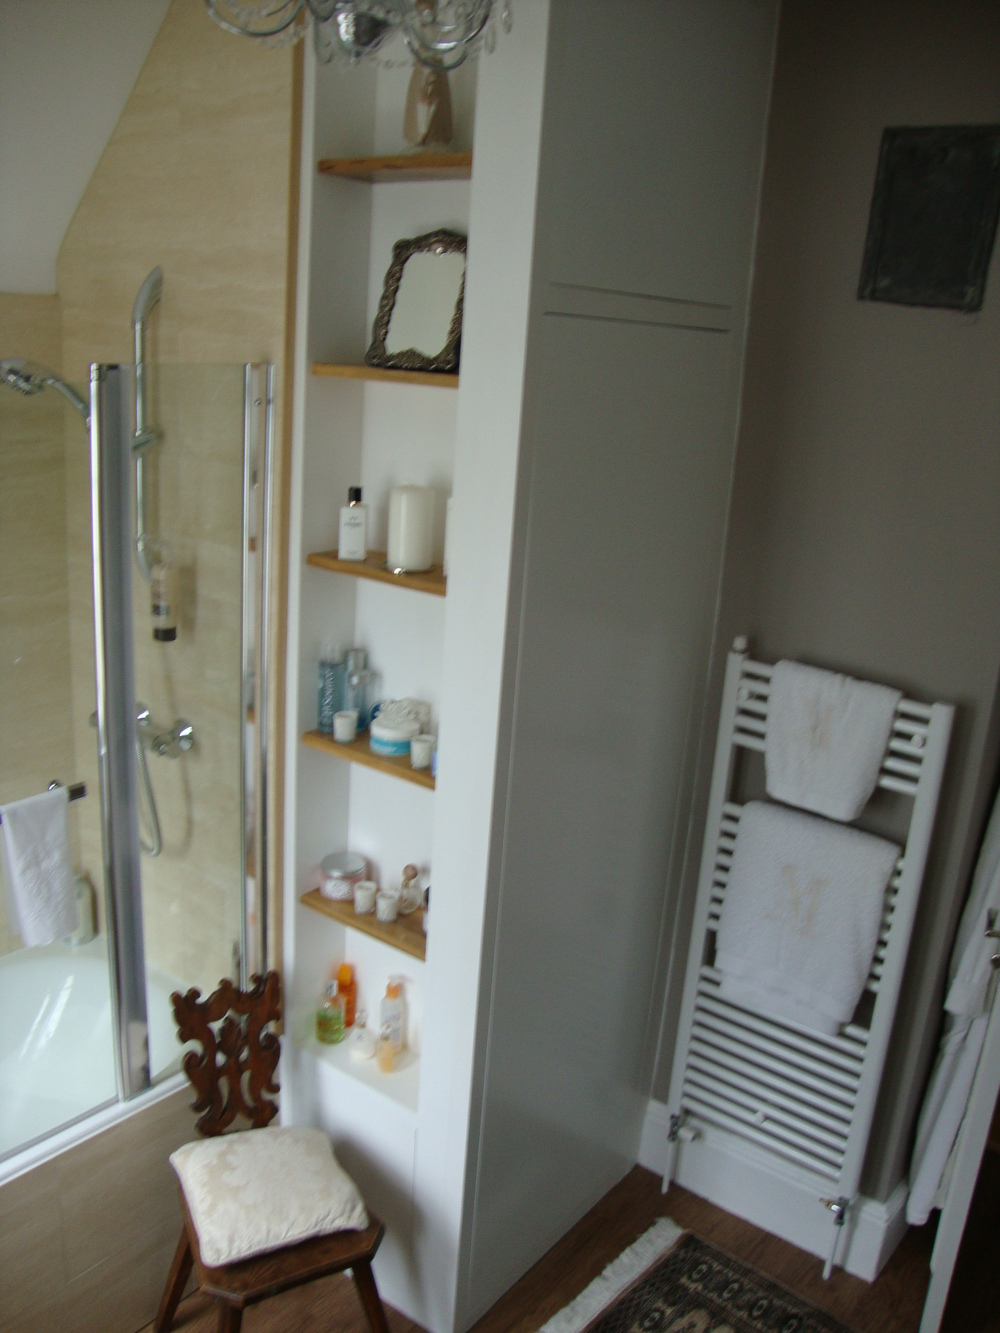 Bathroom shelving. airing cupboard.JPG